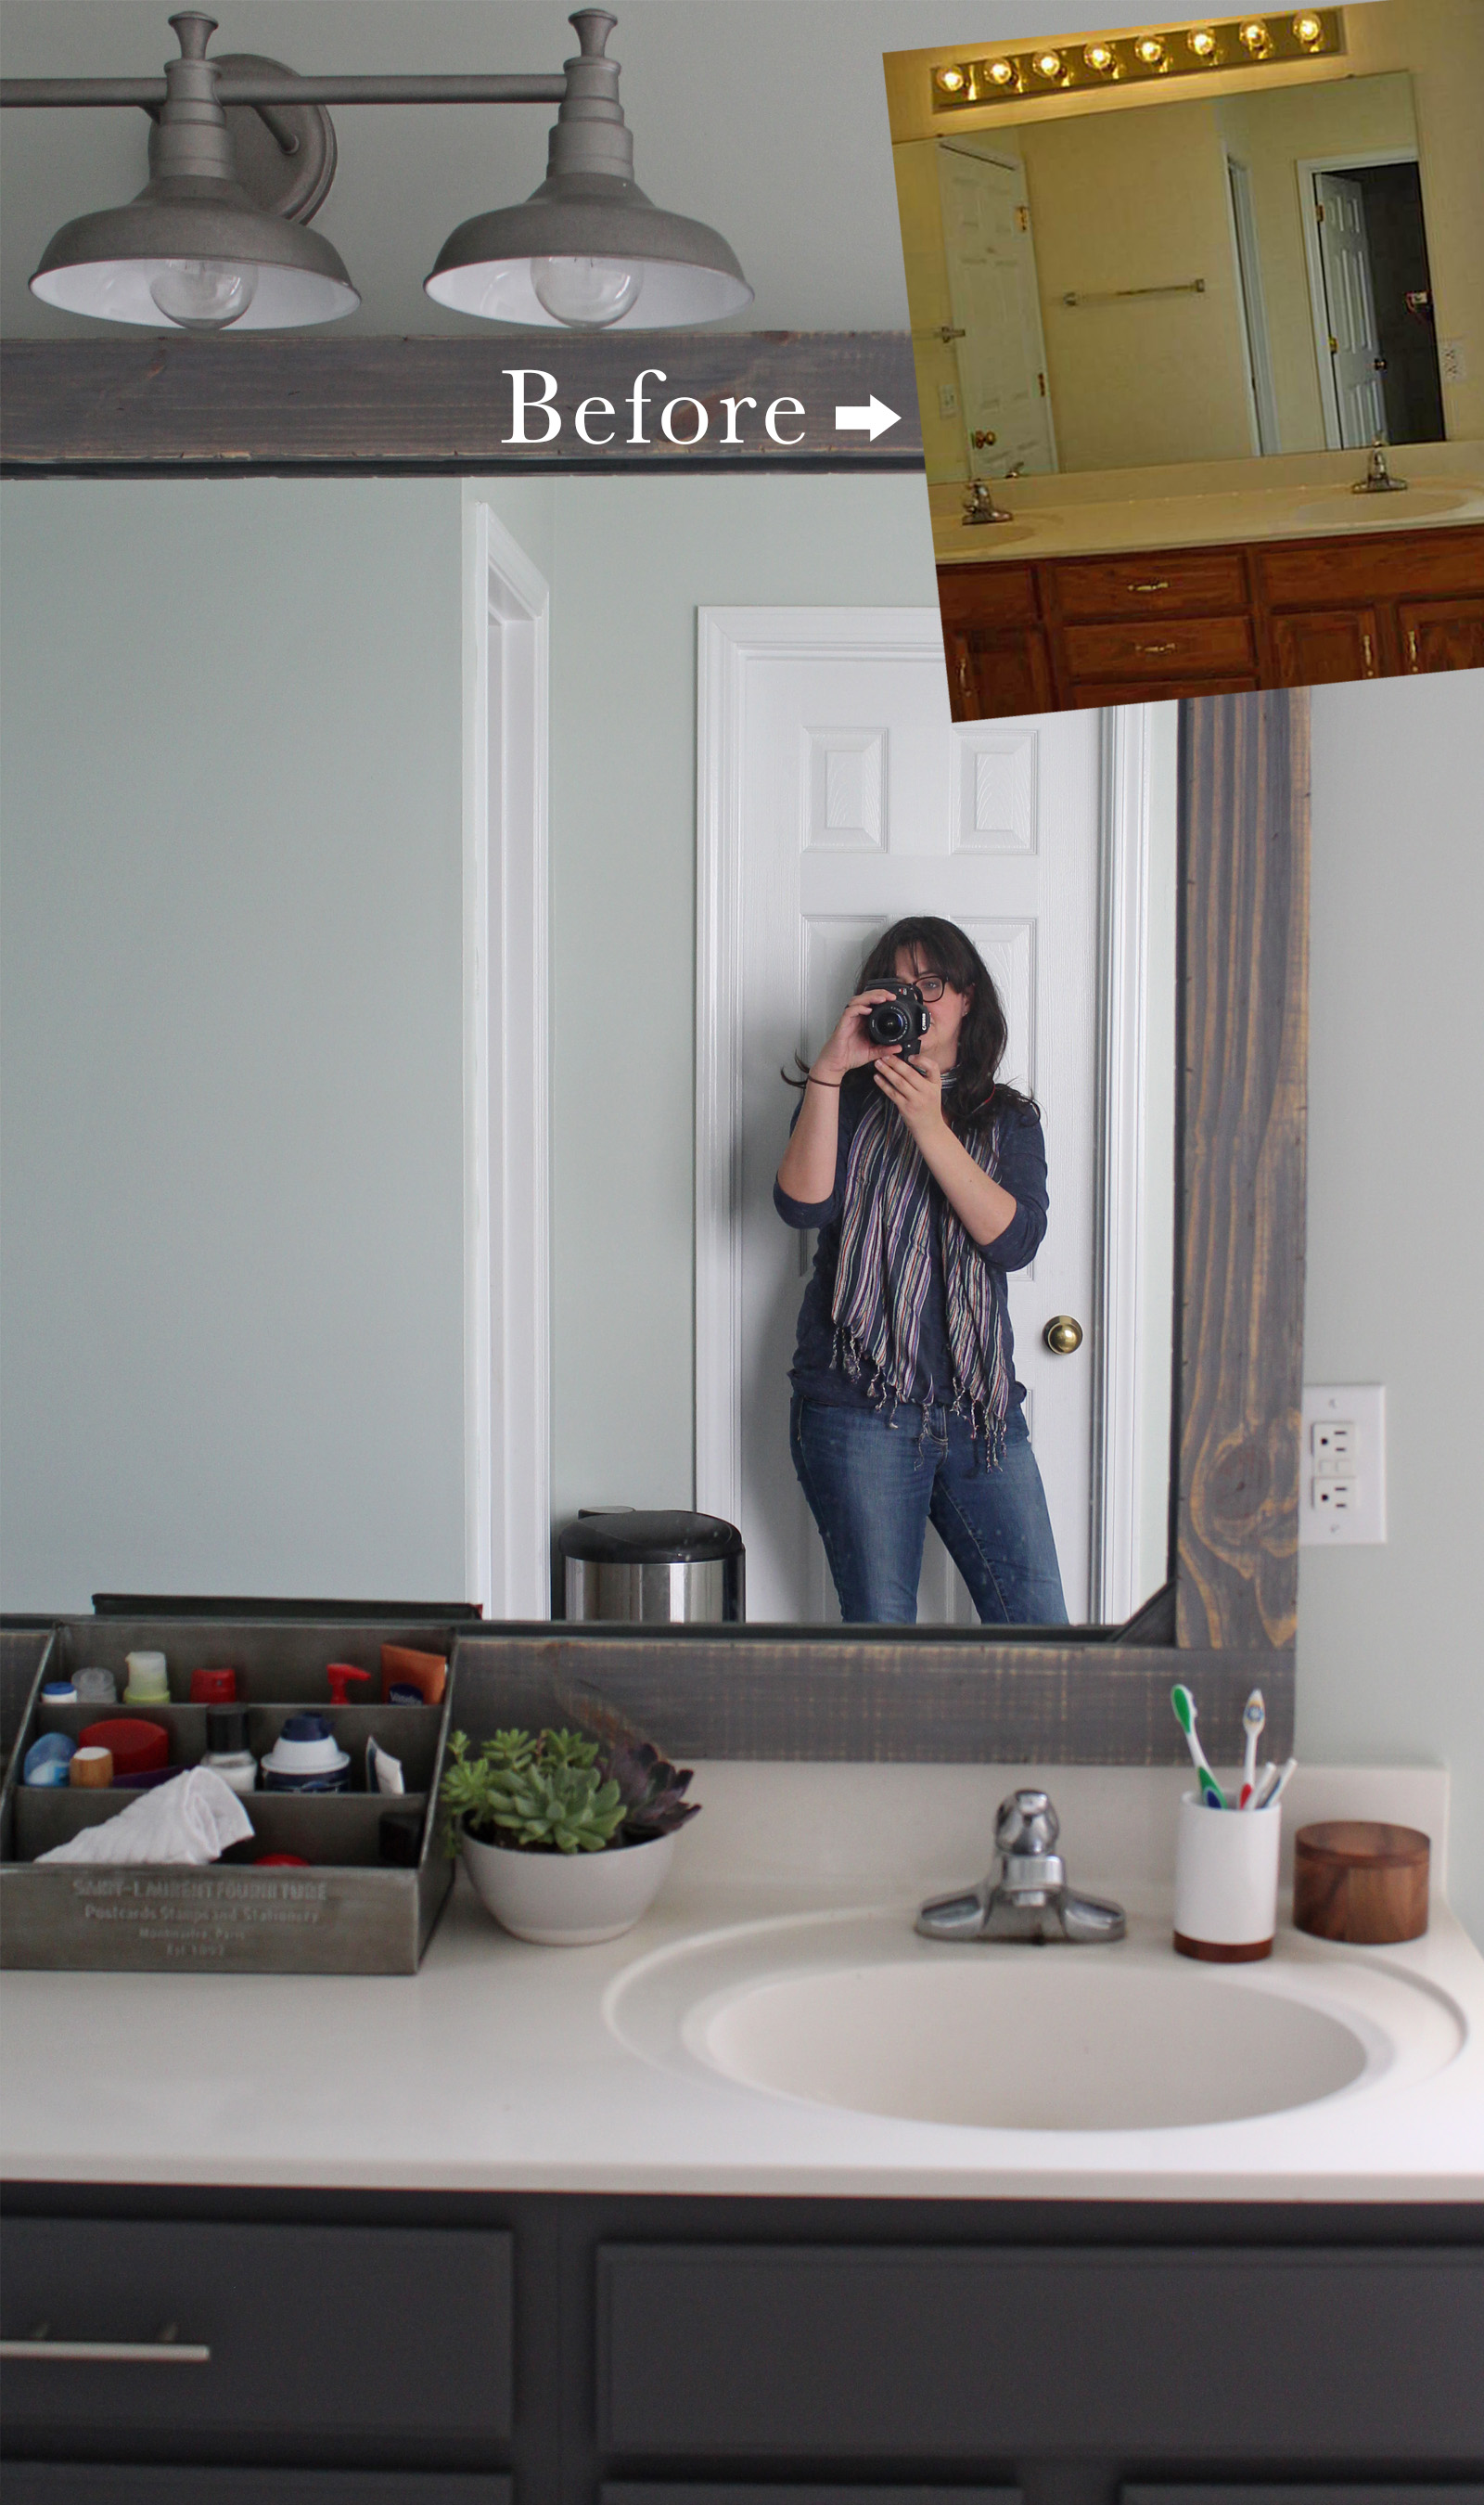 learn how to add a rustic mirror frame to your existing bathroom mirror. small budget friendly! #bathroom #mirrorframe #rustic